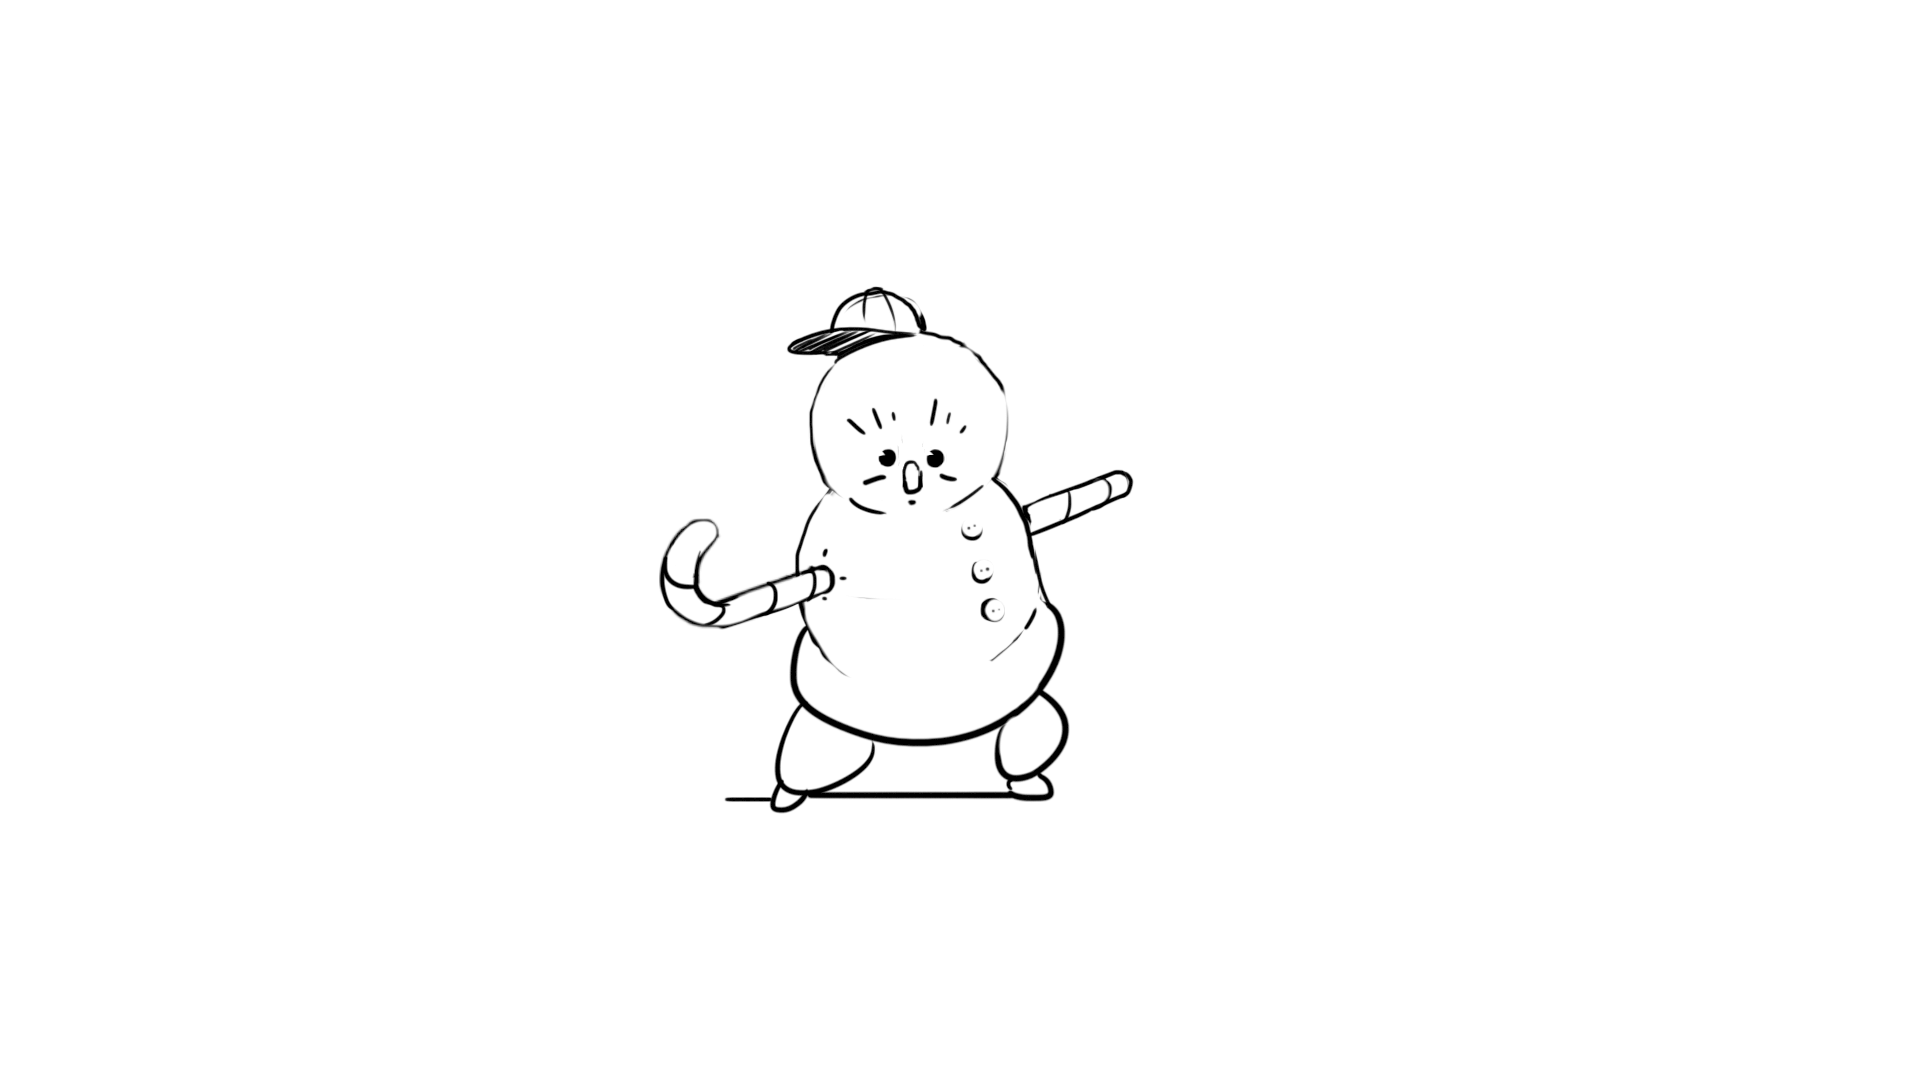 Character Design sketch of a cute snowman